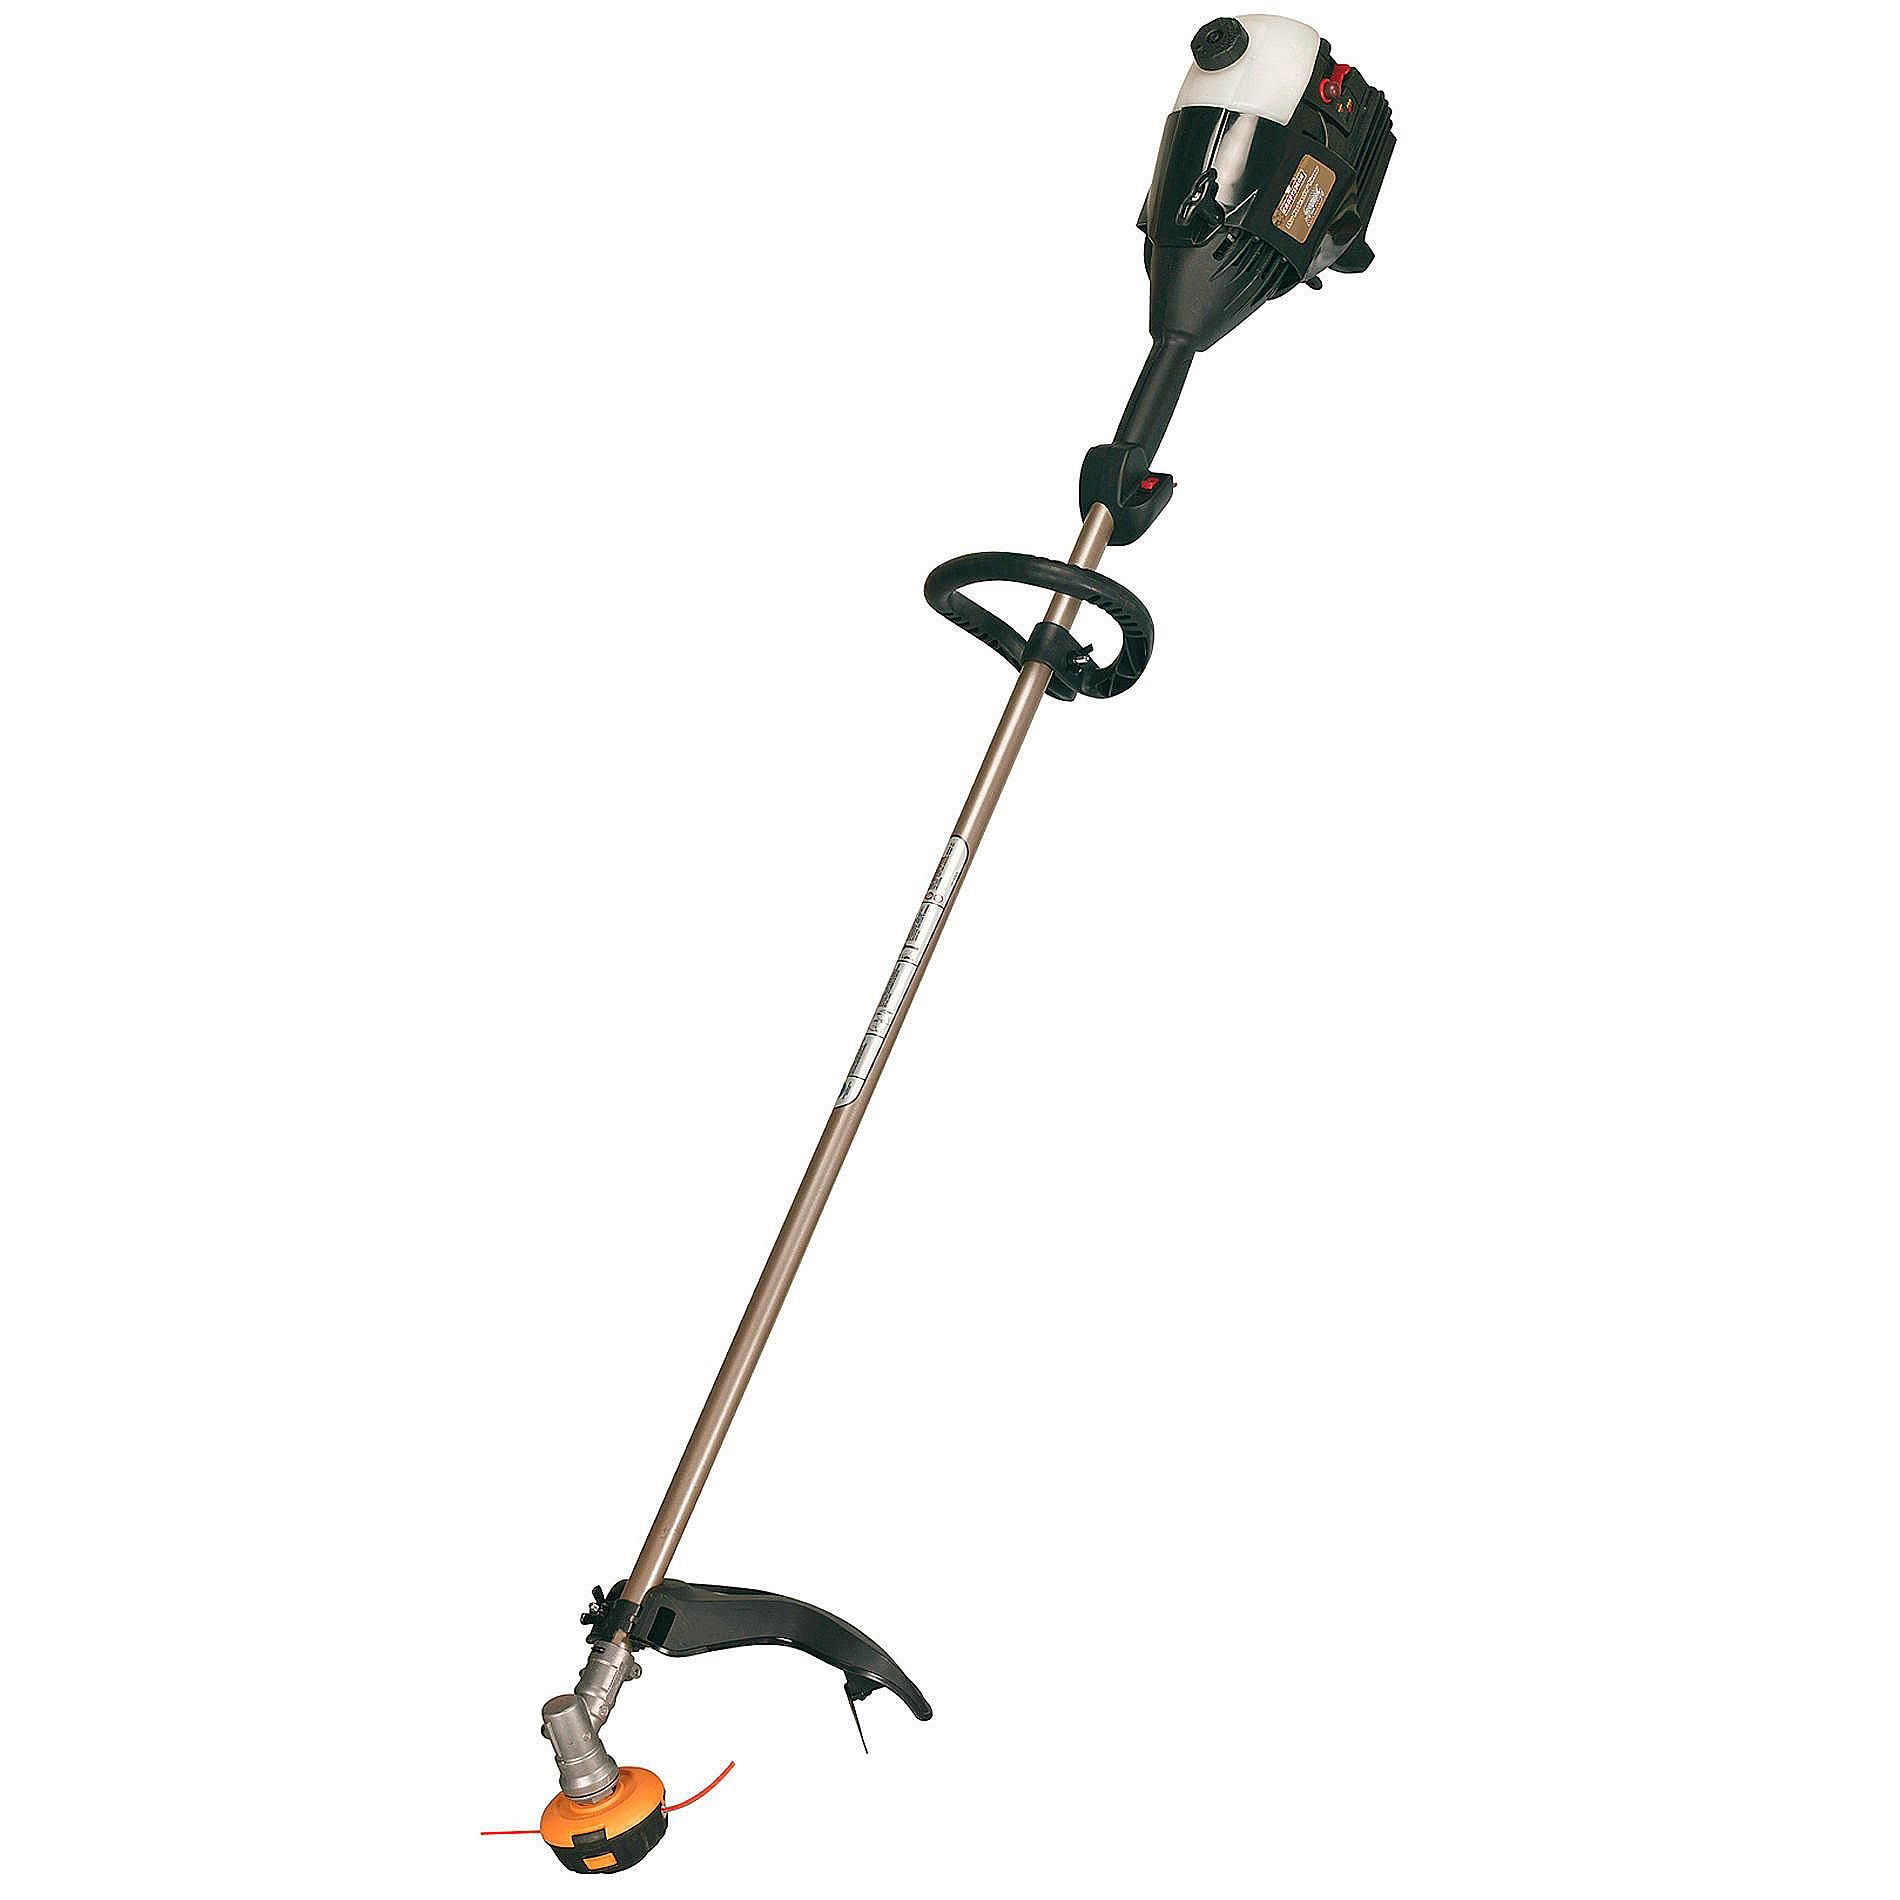 Craftsman 17 in. Gas Line Trimmer, 80th Anniversary